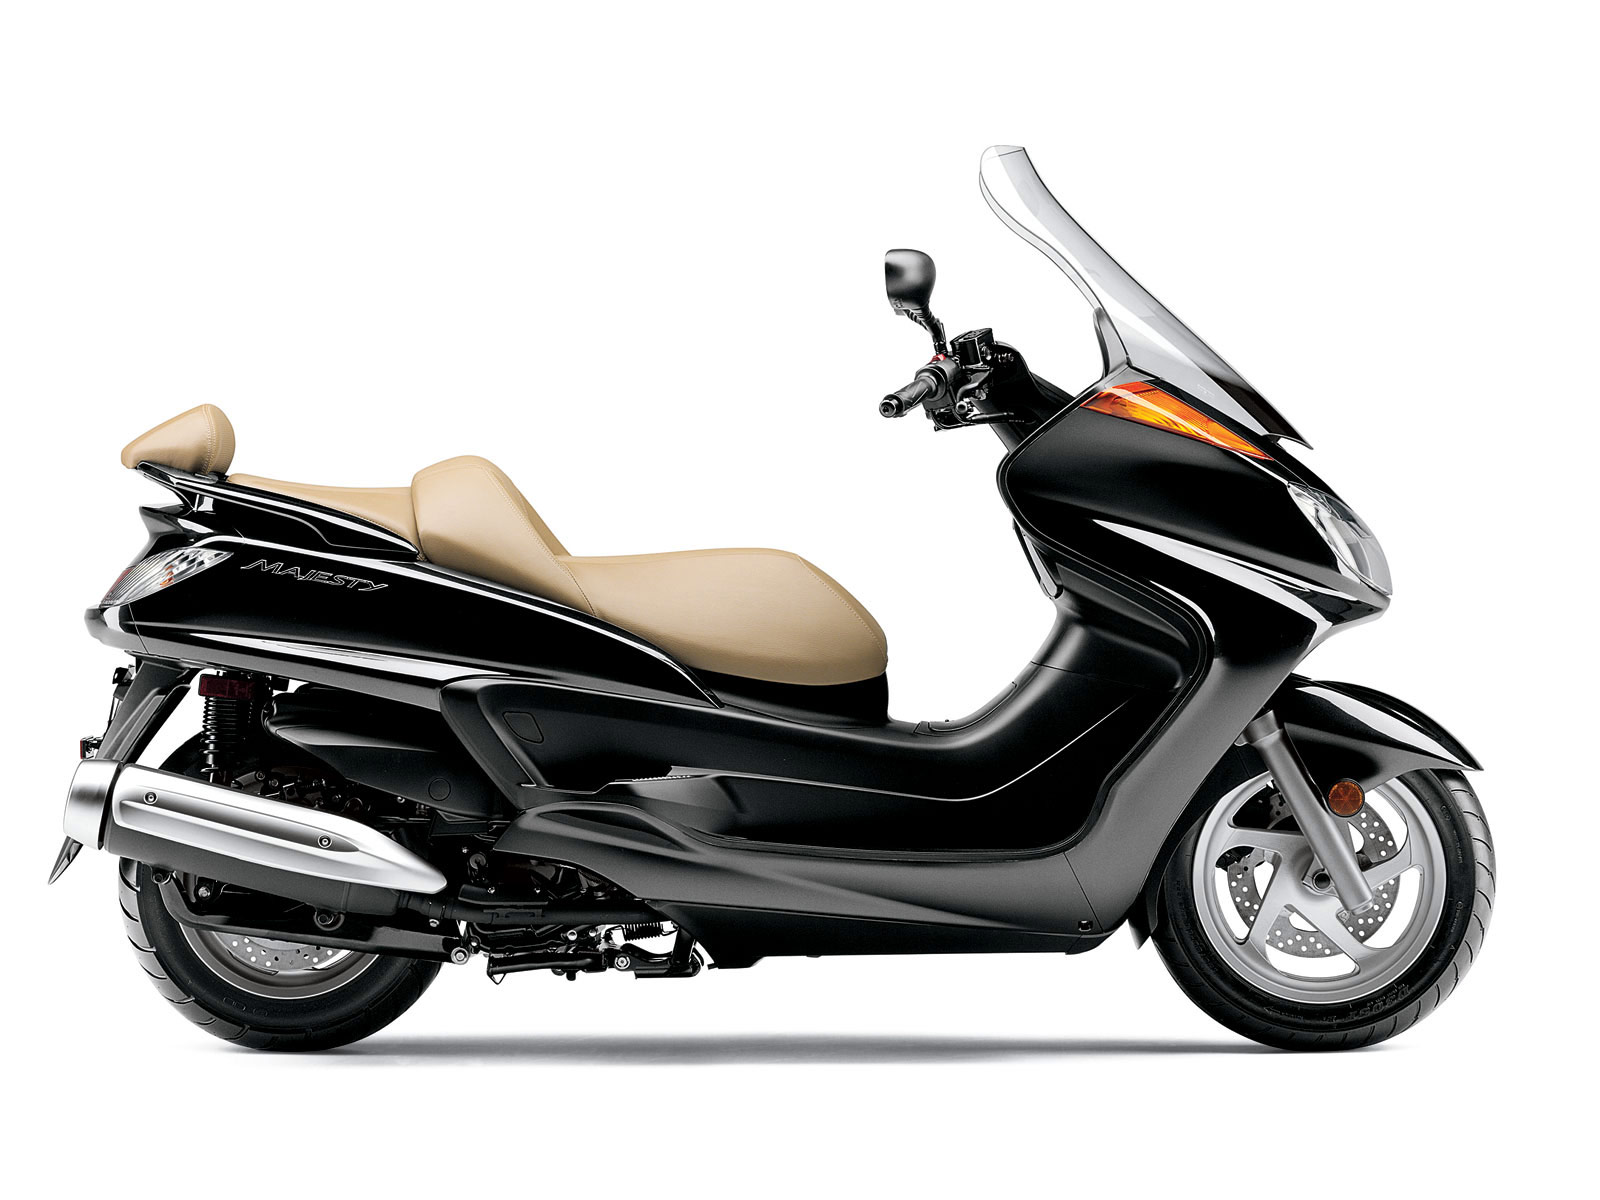 Yamaha Scooter 2012 Majesty Pictures And Specifications